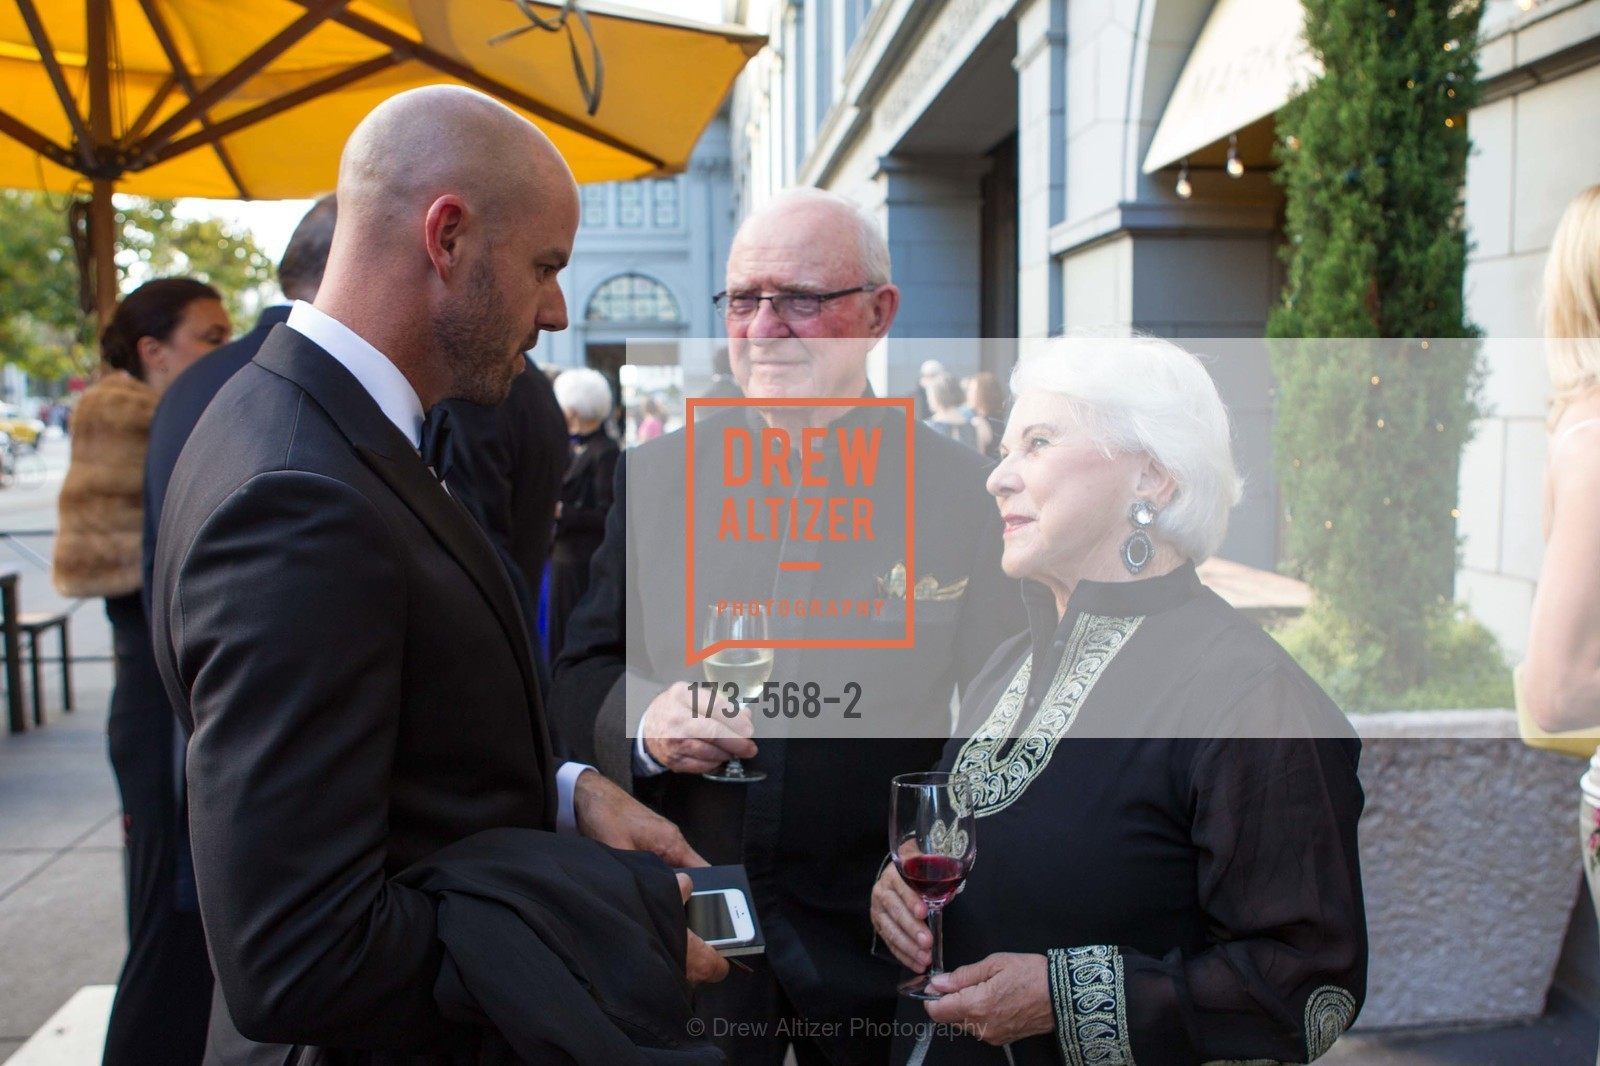 Paul Slawson, Mary Slawson, SOTHEBY'S  Hosts a Private Viewing of Highlights from the Collection of MRS. PAUL MELLON, US, September 17th, 2014,Drew Altizer, Drew Altizer Photography, full-service event agency, private events, San Francisco photographer, photographer California